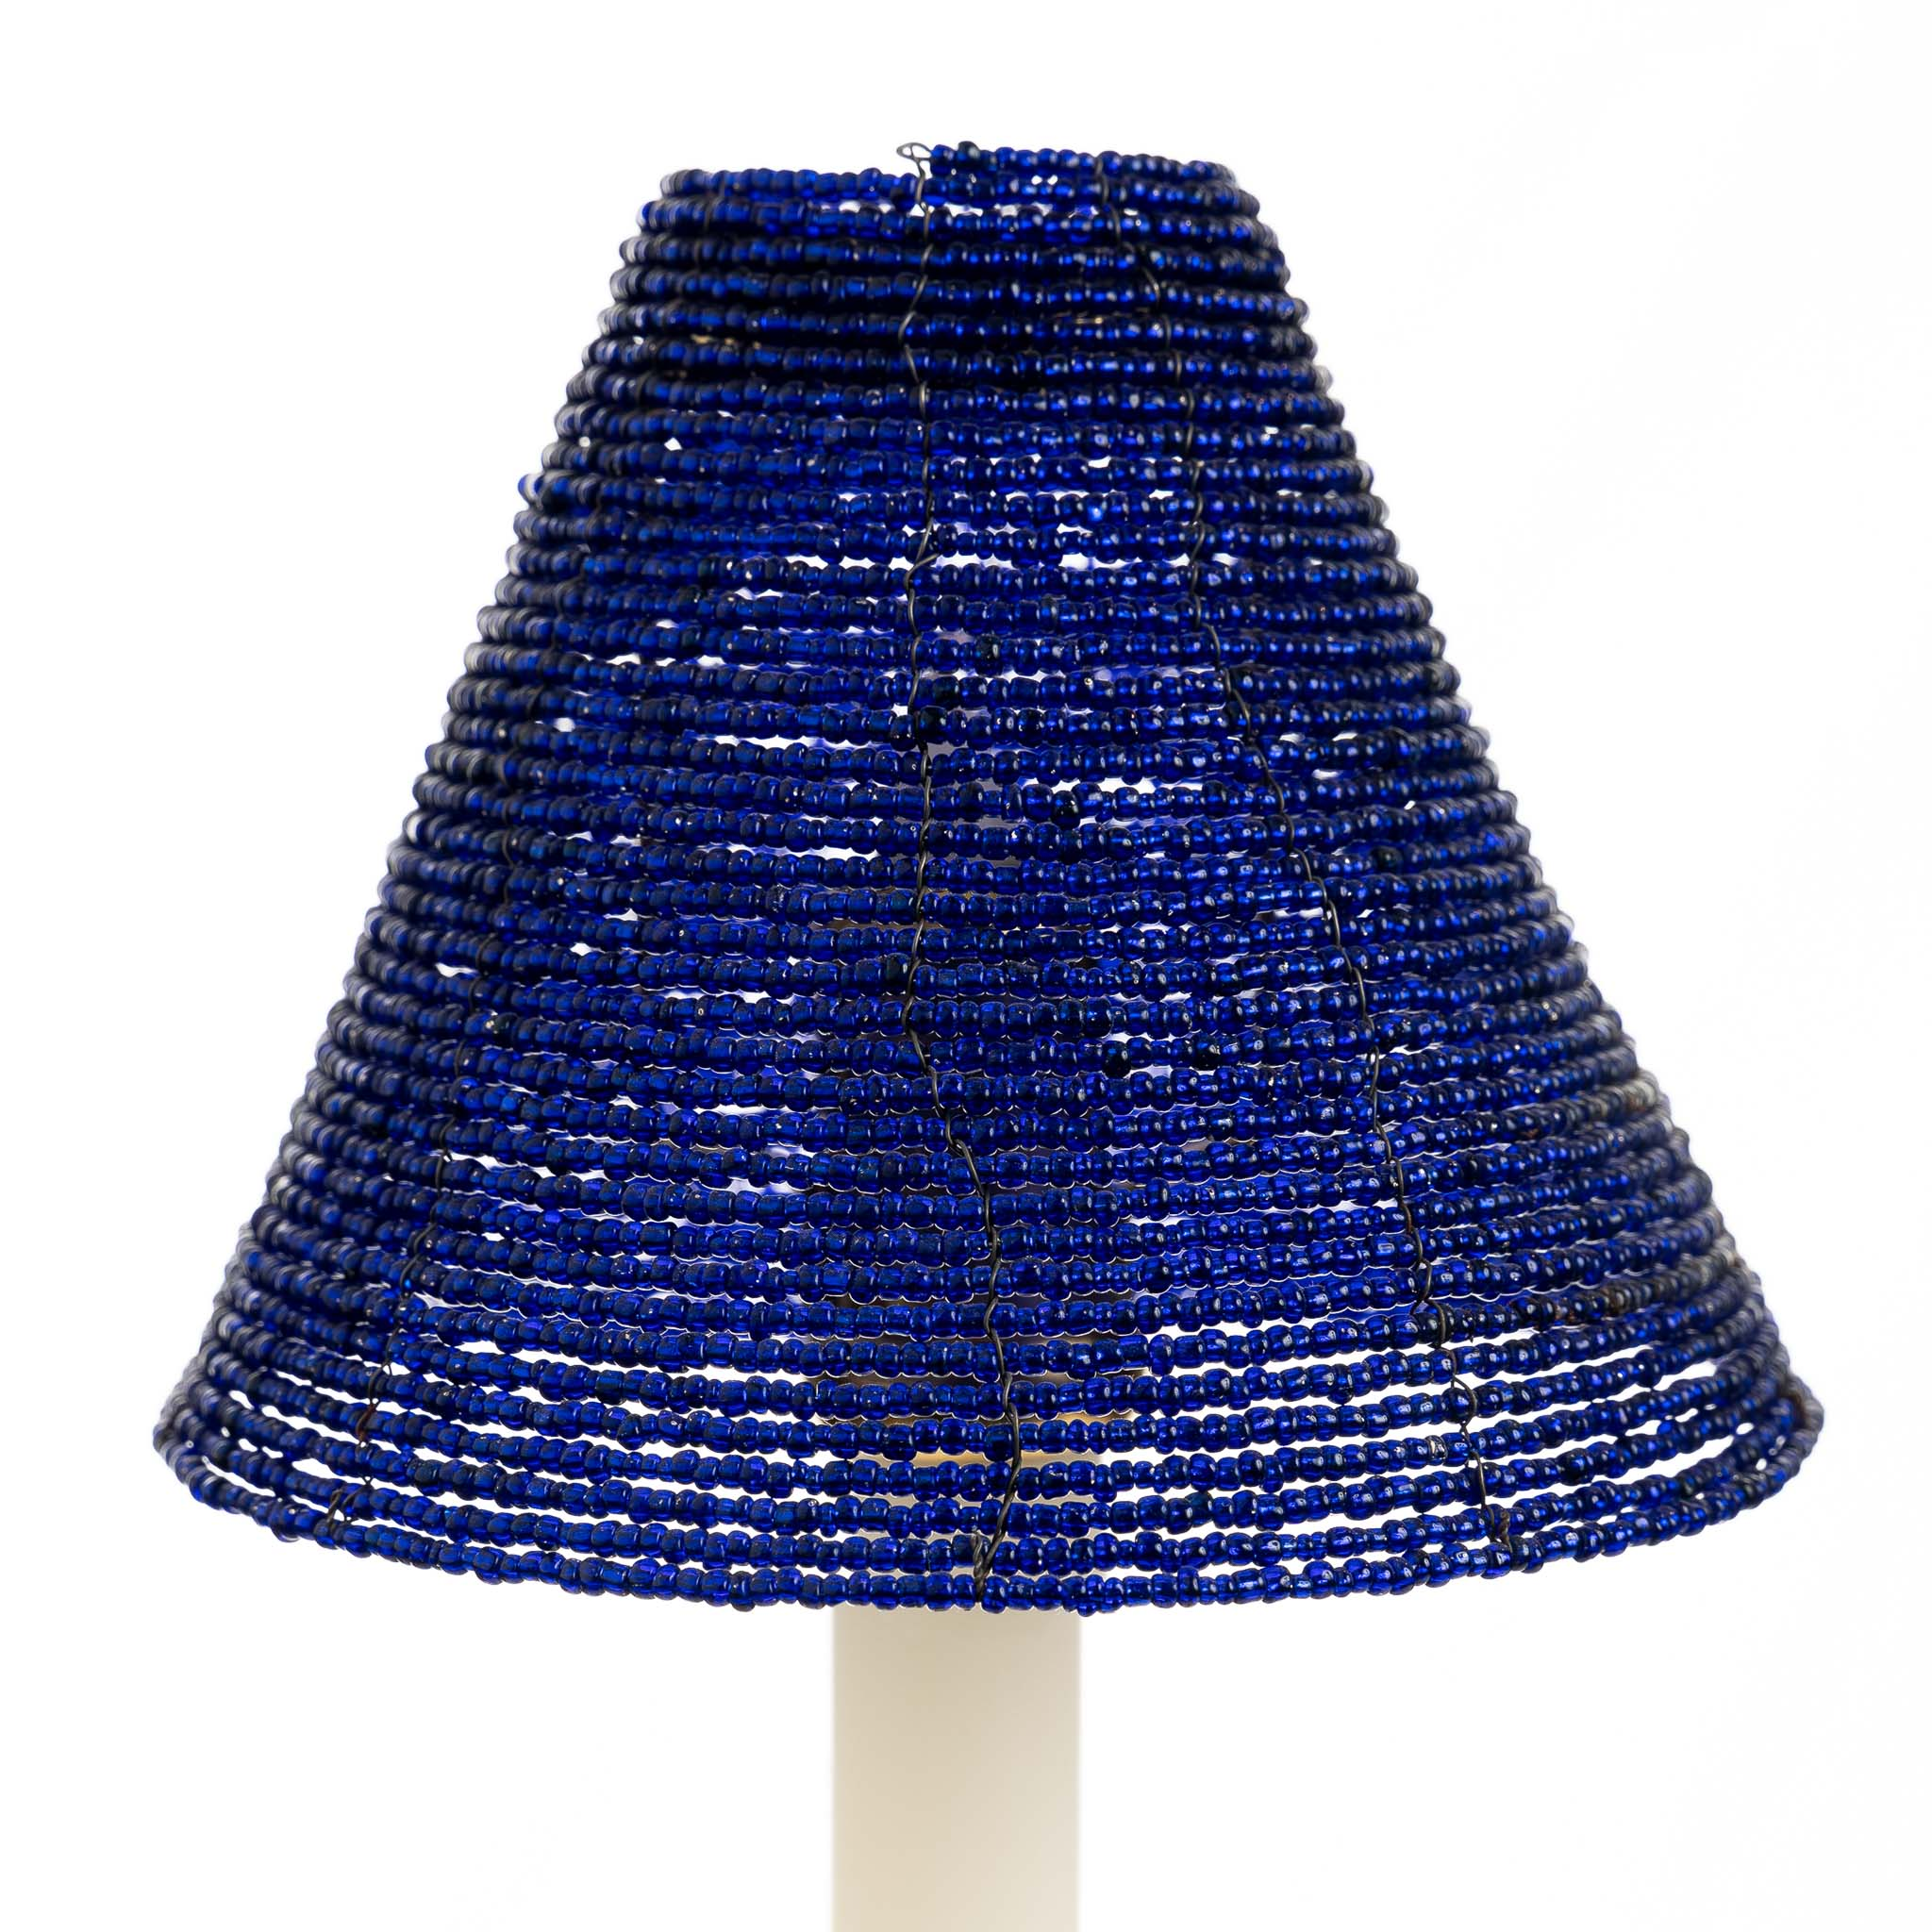 Glass Beaded Candle Shade - Blue | Nicholas Engert Interiors